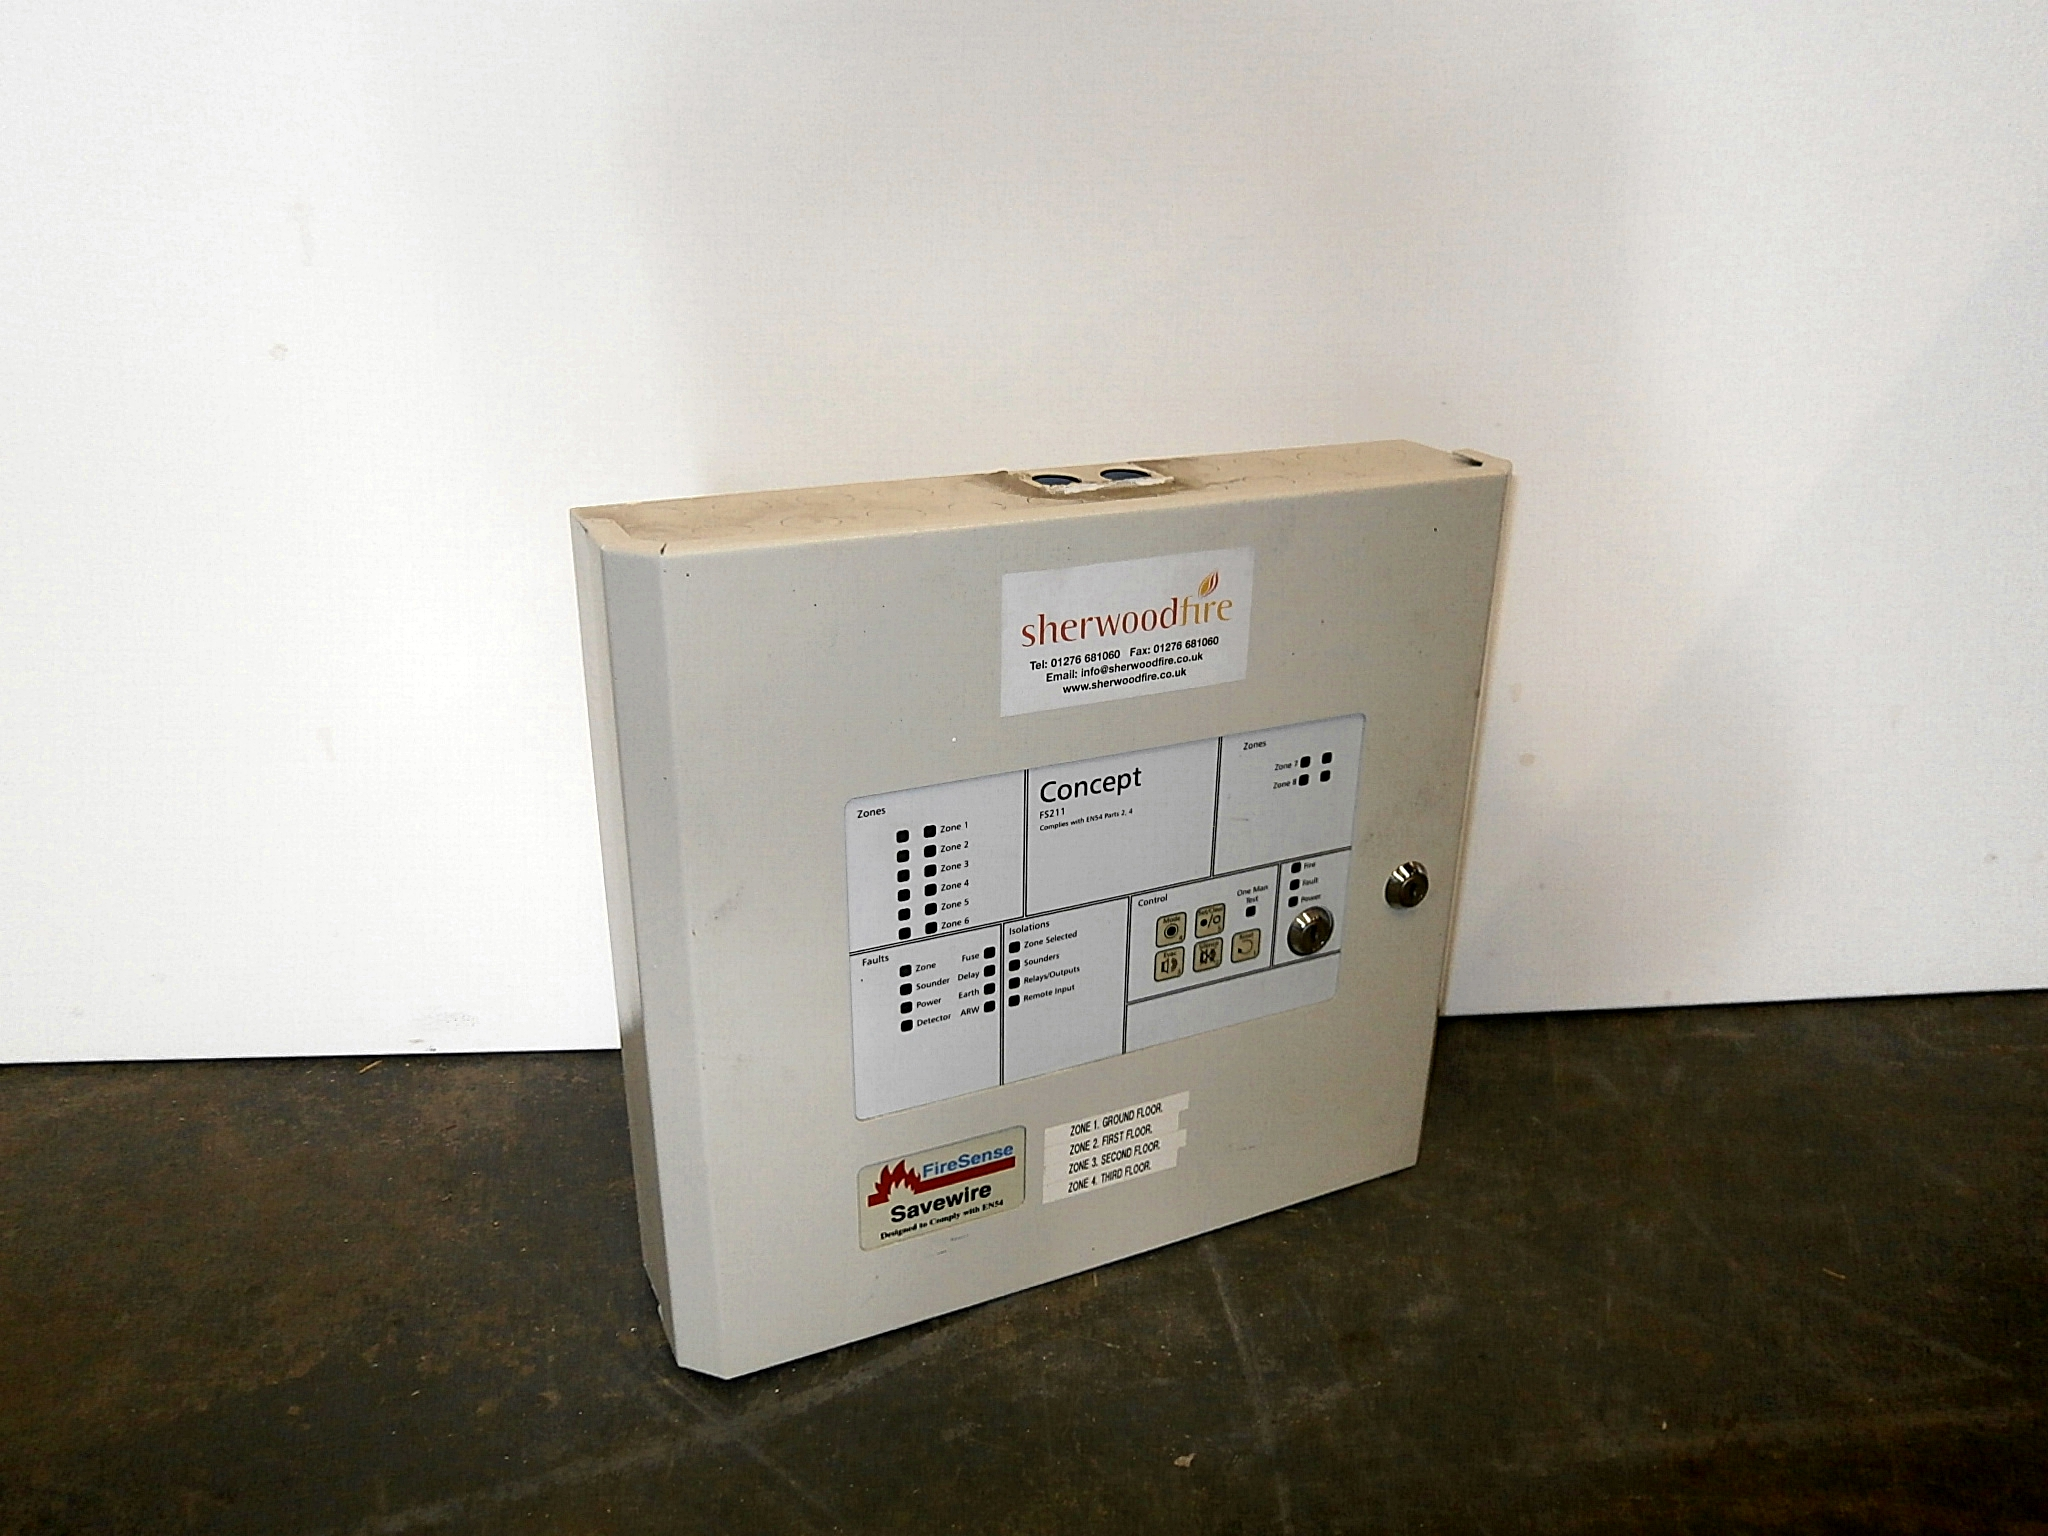 0310129 modern fuse box ( h 33cm x 36 x 9 ) x 1off - stockyard prop and  backdrop hire